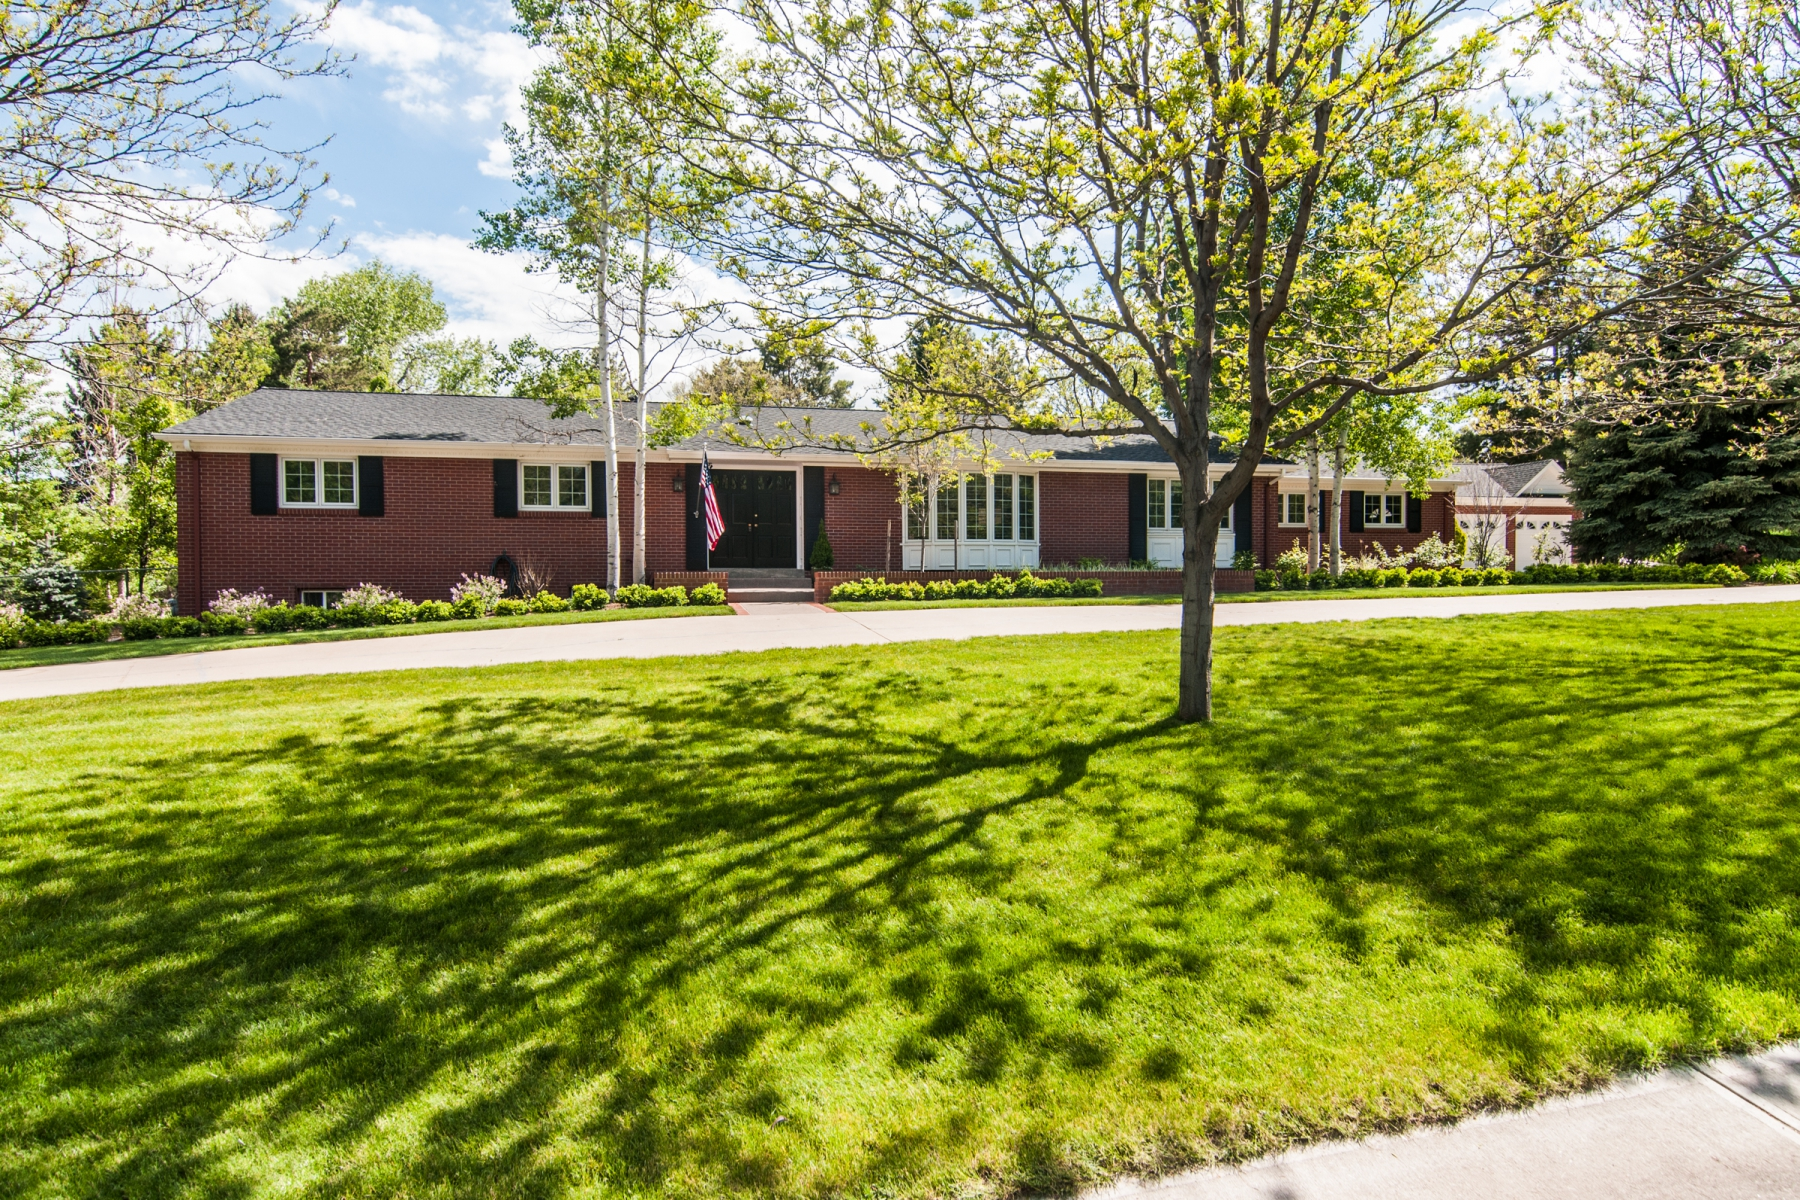 Single Family Home for Sale at Charming three-bedroom red brick ranch 2550 Cherryridge Road Cherry Hills Village, Colorado 80113 United States